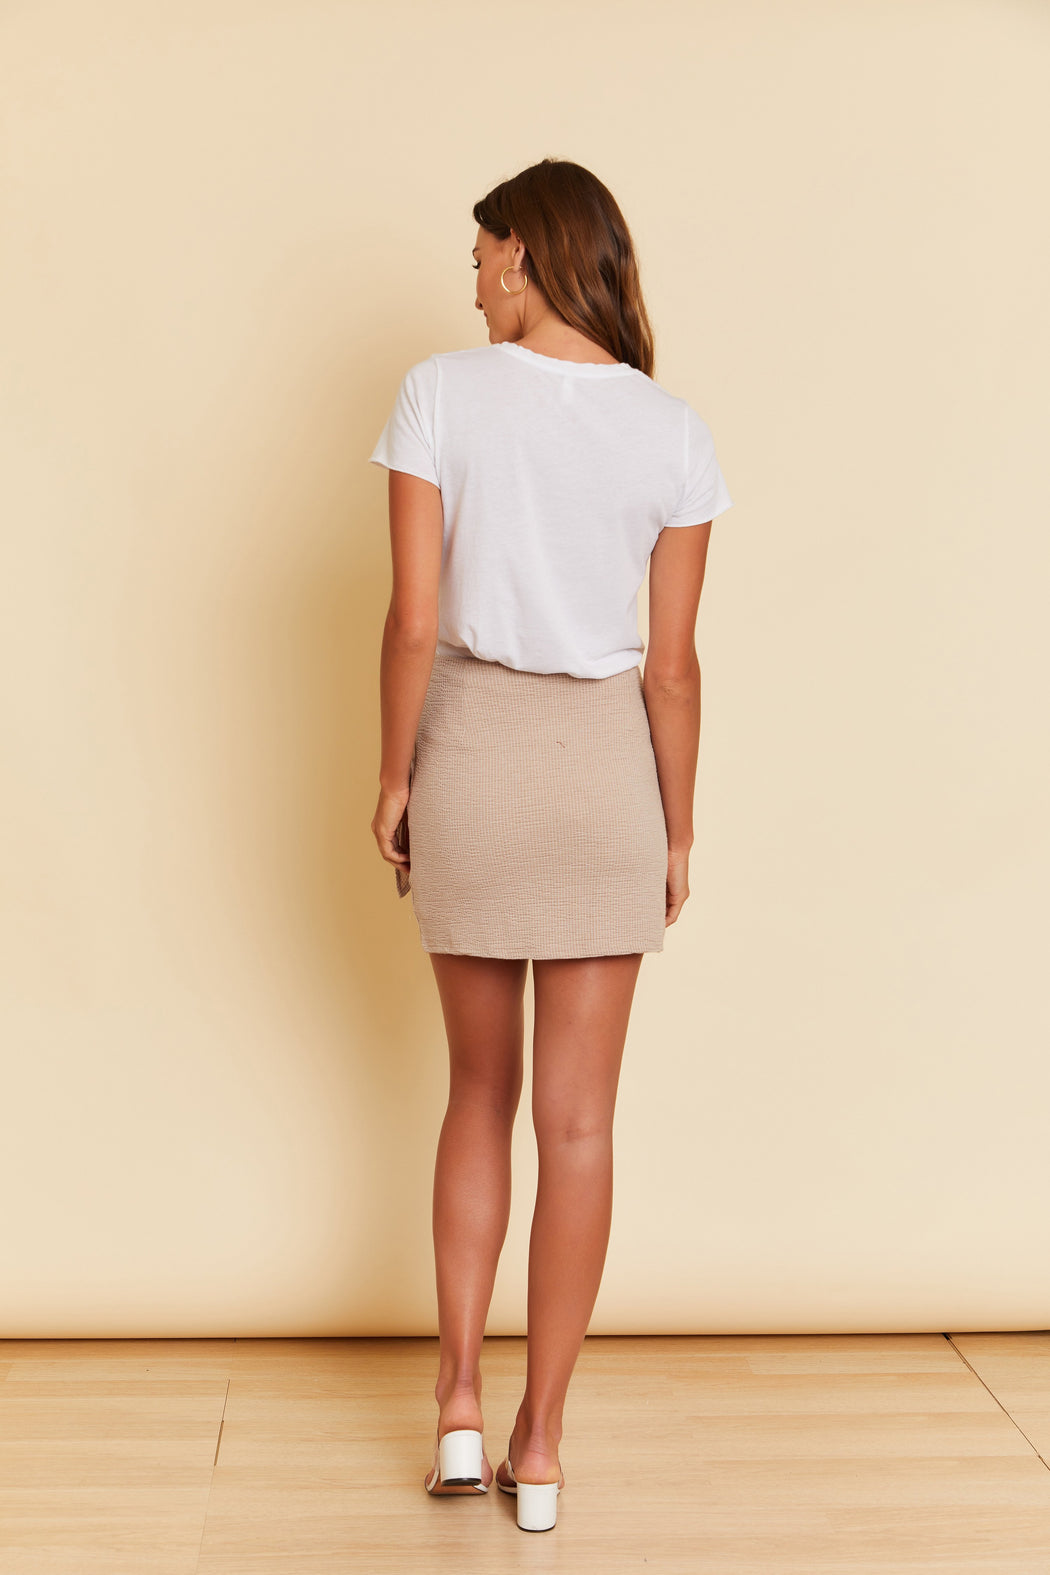 Molly Tie Knit Skirt - wearNYLA